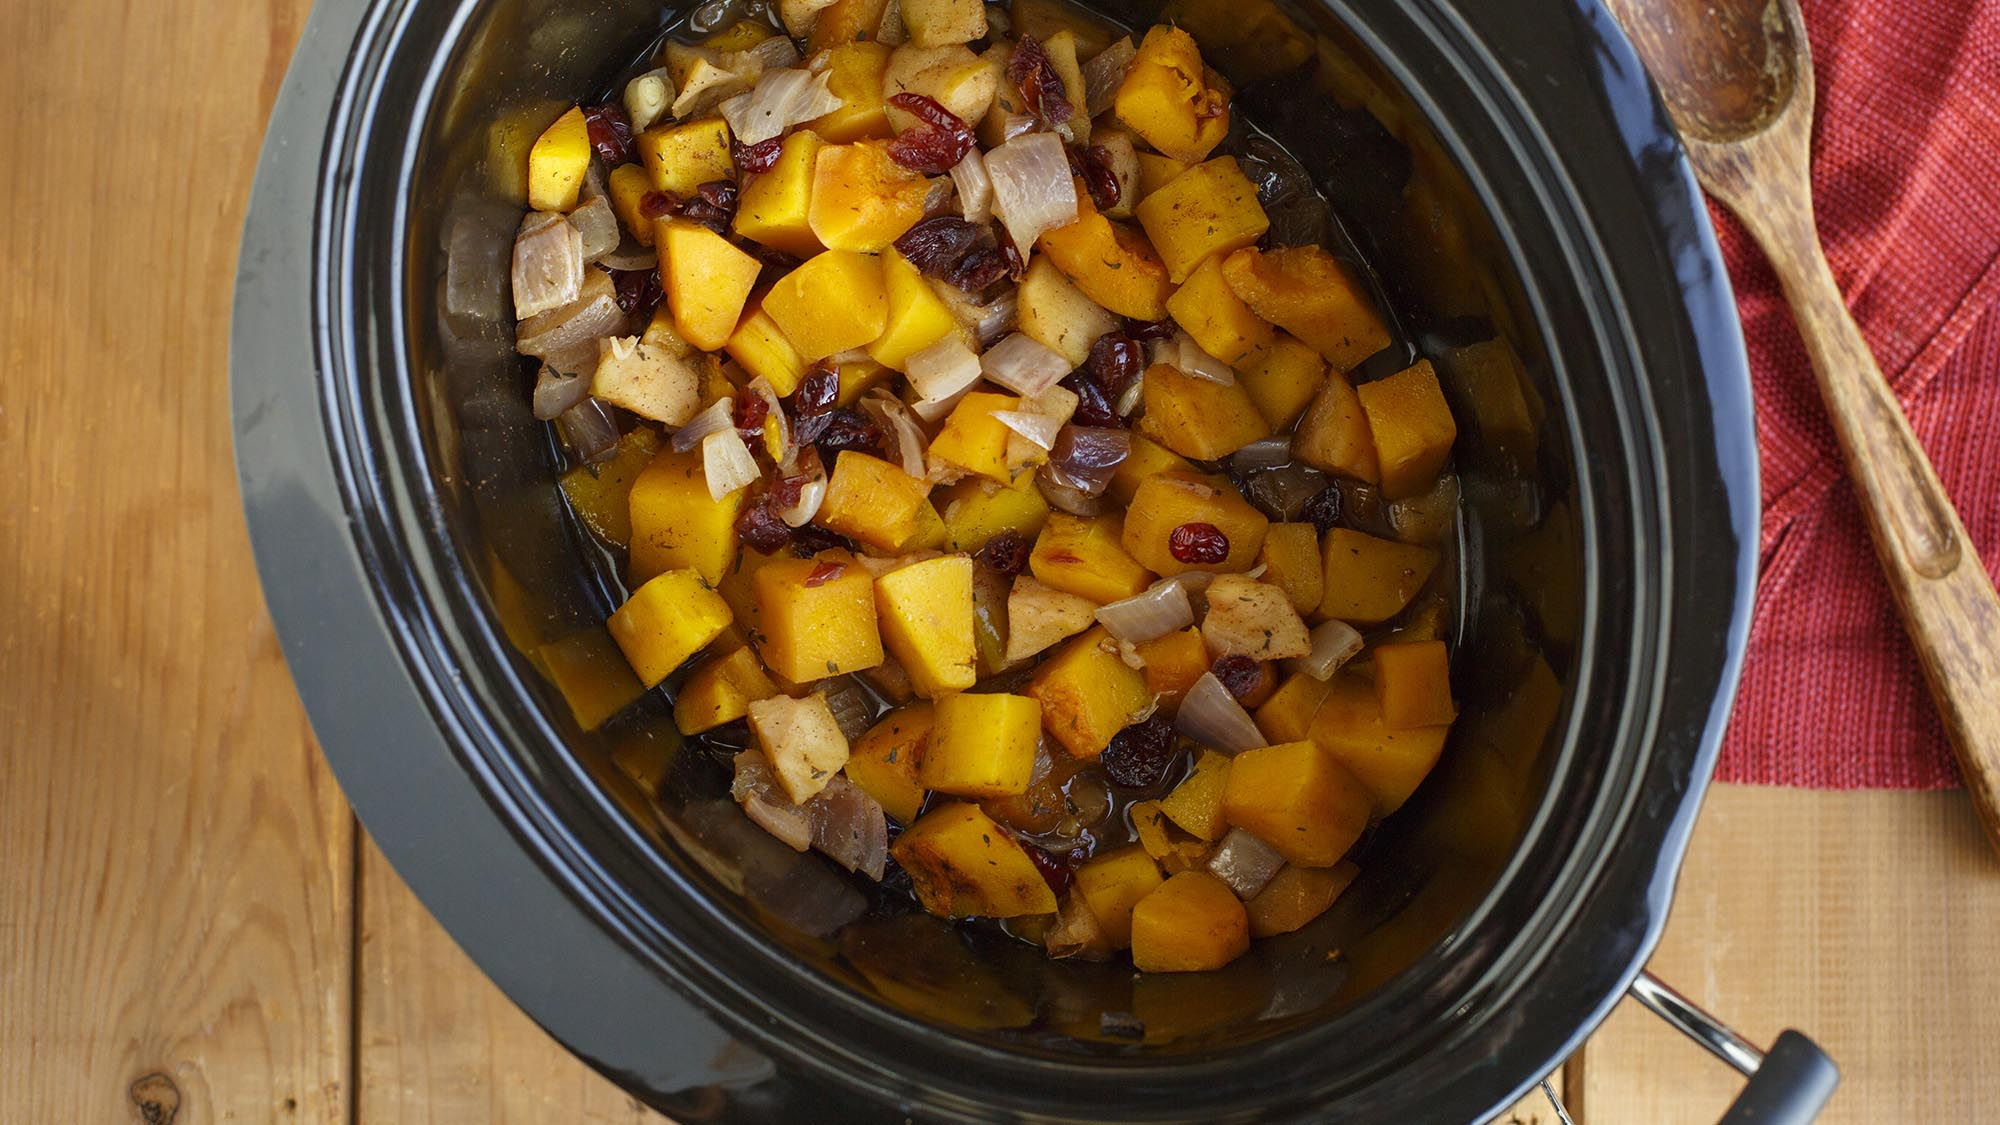 slow_cooker_squash_with_cranberries_and_apples_2000x1125.jpg